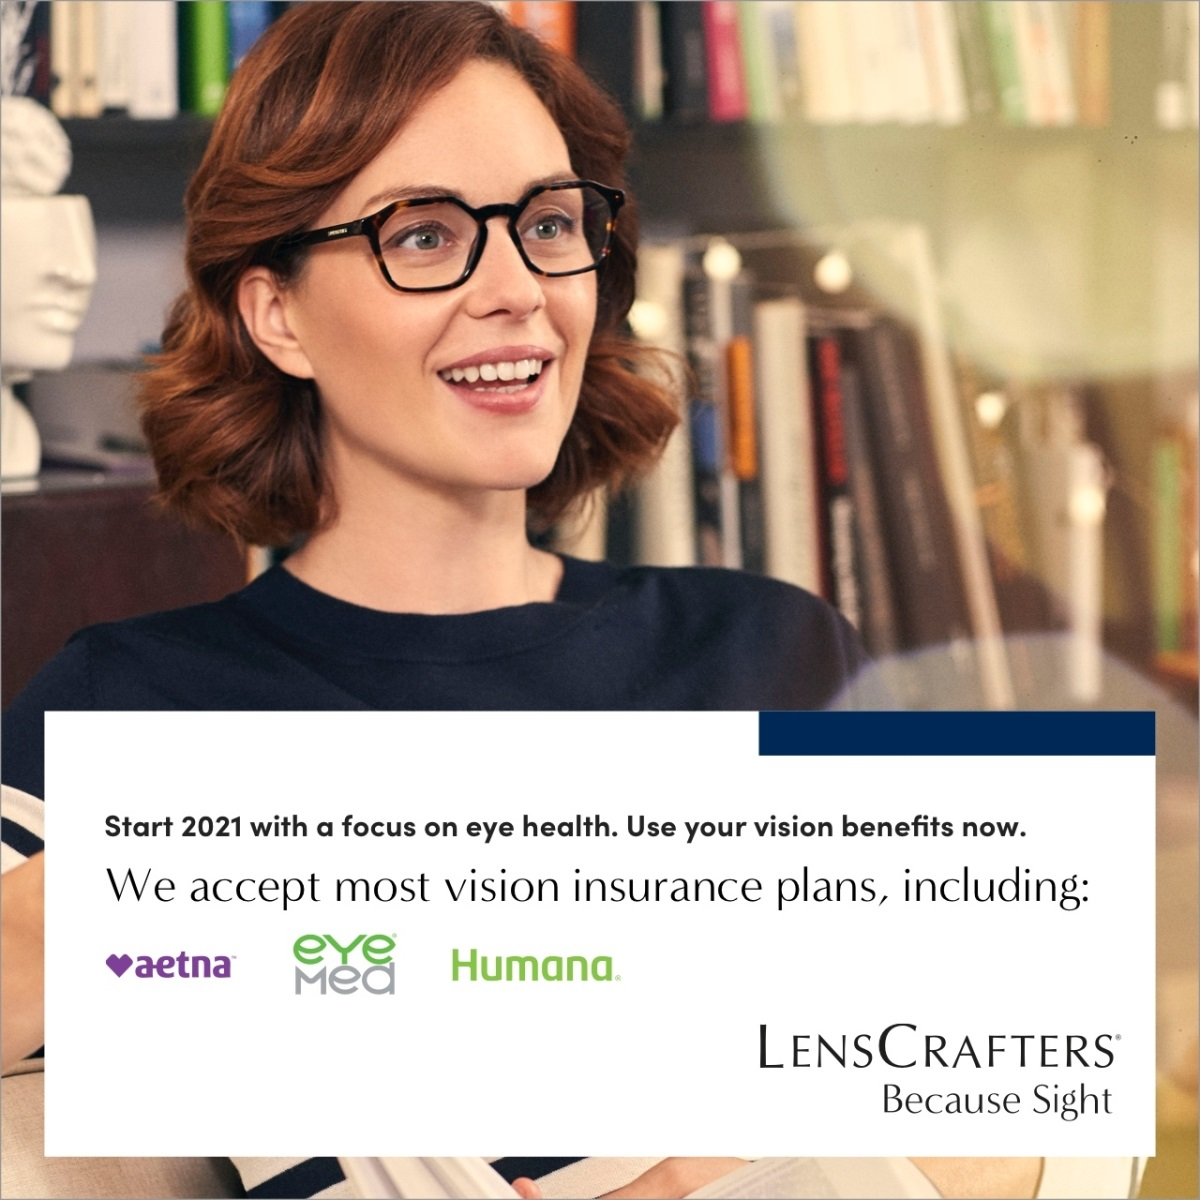 New Year, New Benefits. Make the most of your 2021 vision benefits with LensCrafters. We accept most from LensCrafters